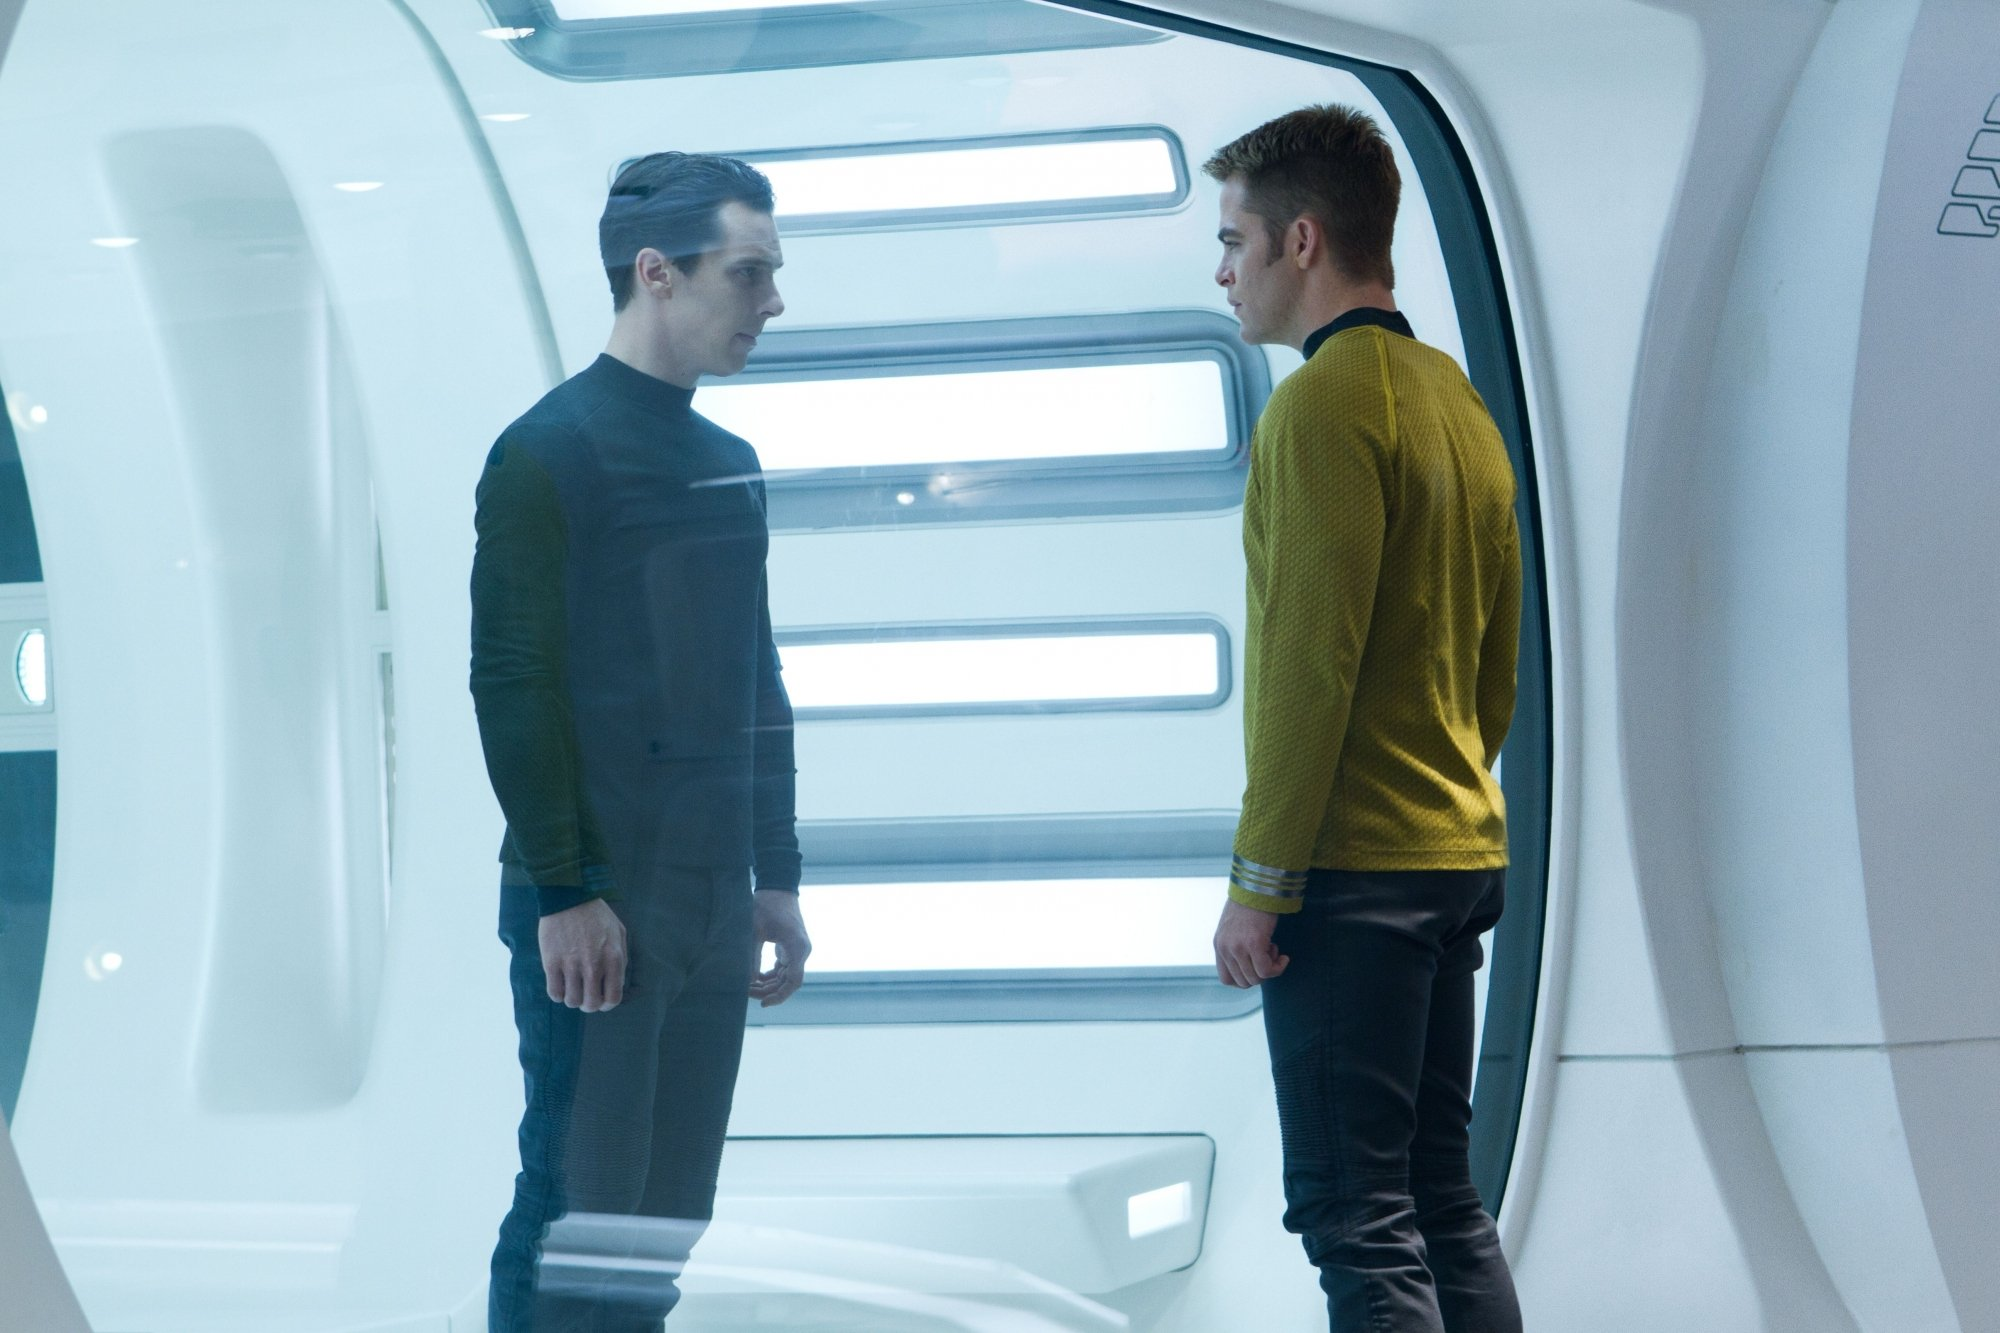 7450 Star Trek: All The Live-Action Movies & TV Shows, Ranked!